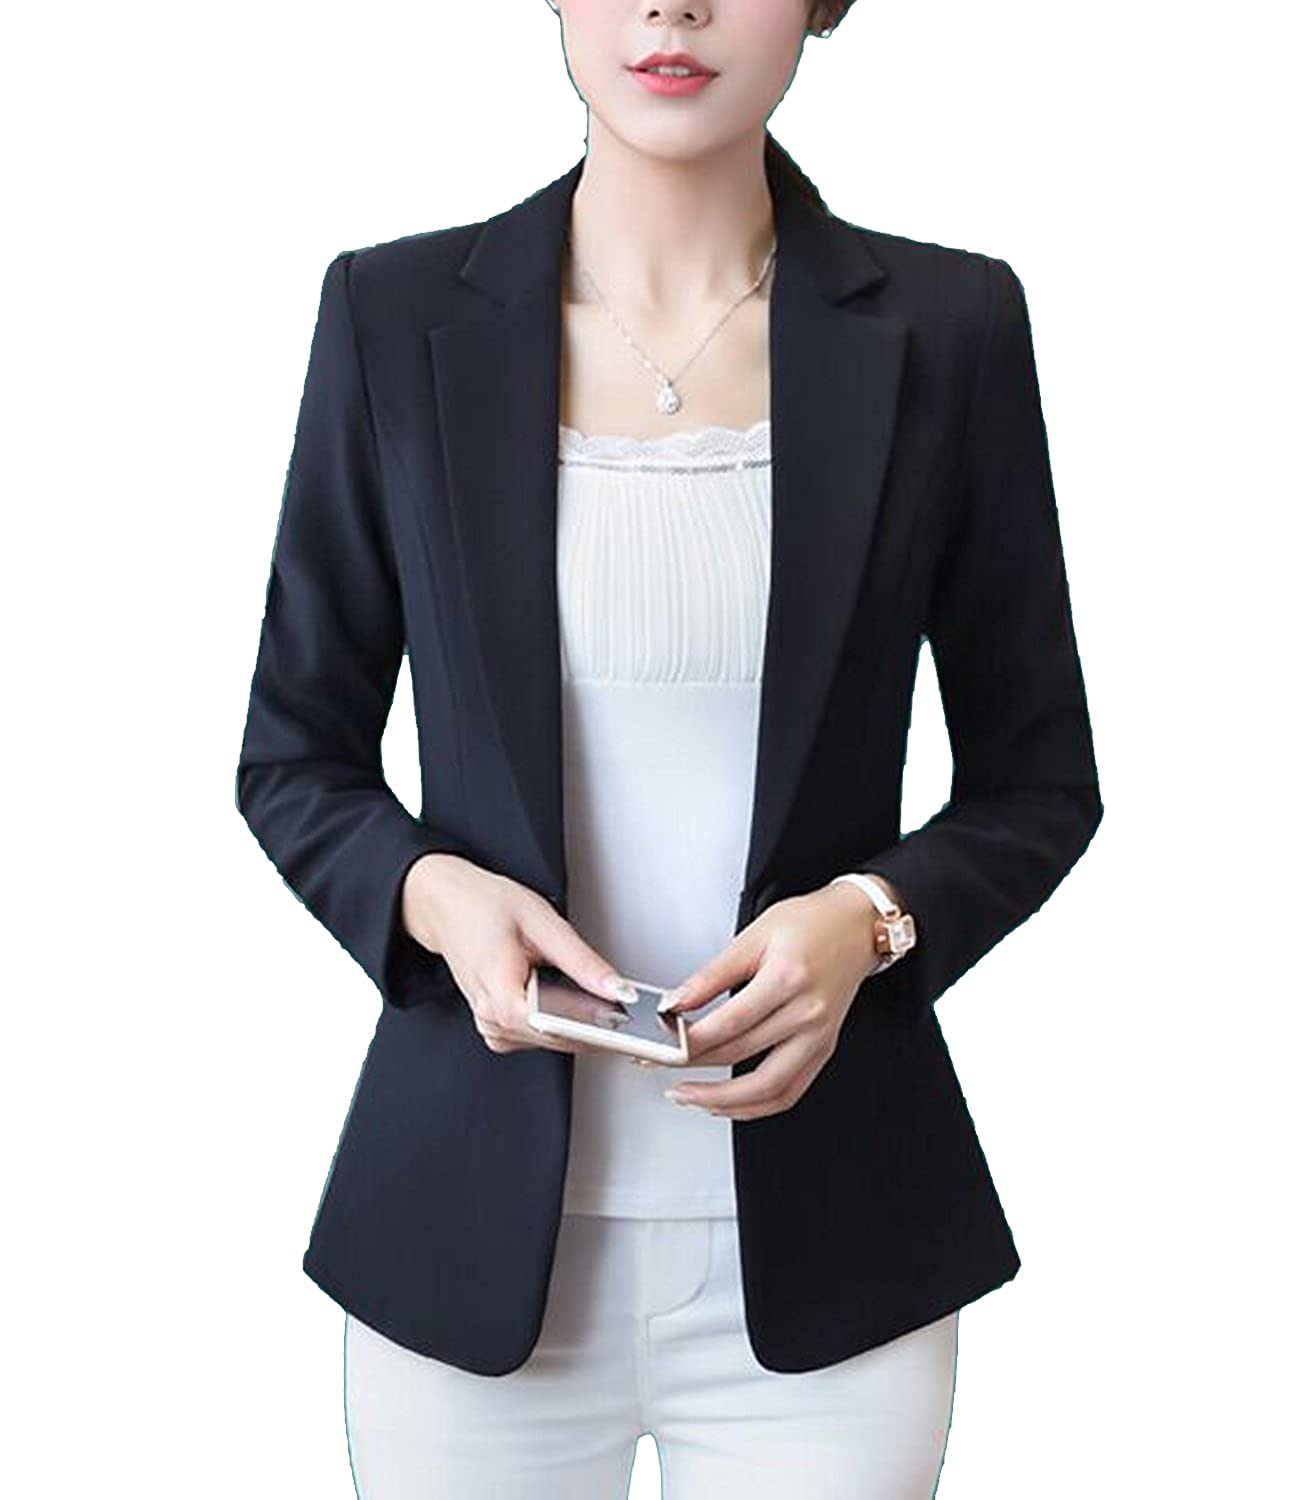 ae91802f7 ... blazer,1 button jacket,Exquisite little pocket,Shawl collar and Notch  sollar suits.elegant,noble,modest,chic,fashion,slim fitted. Fit for  spring/autumn ...